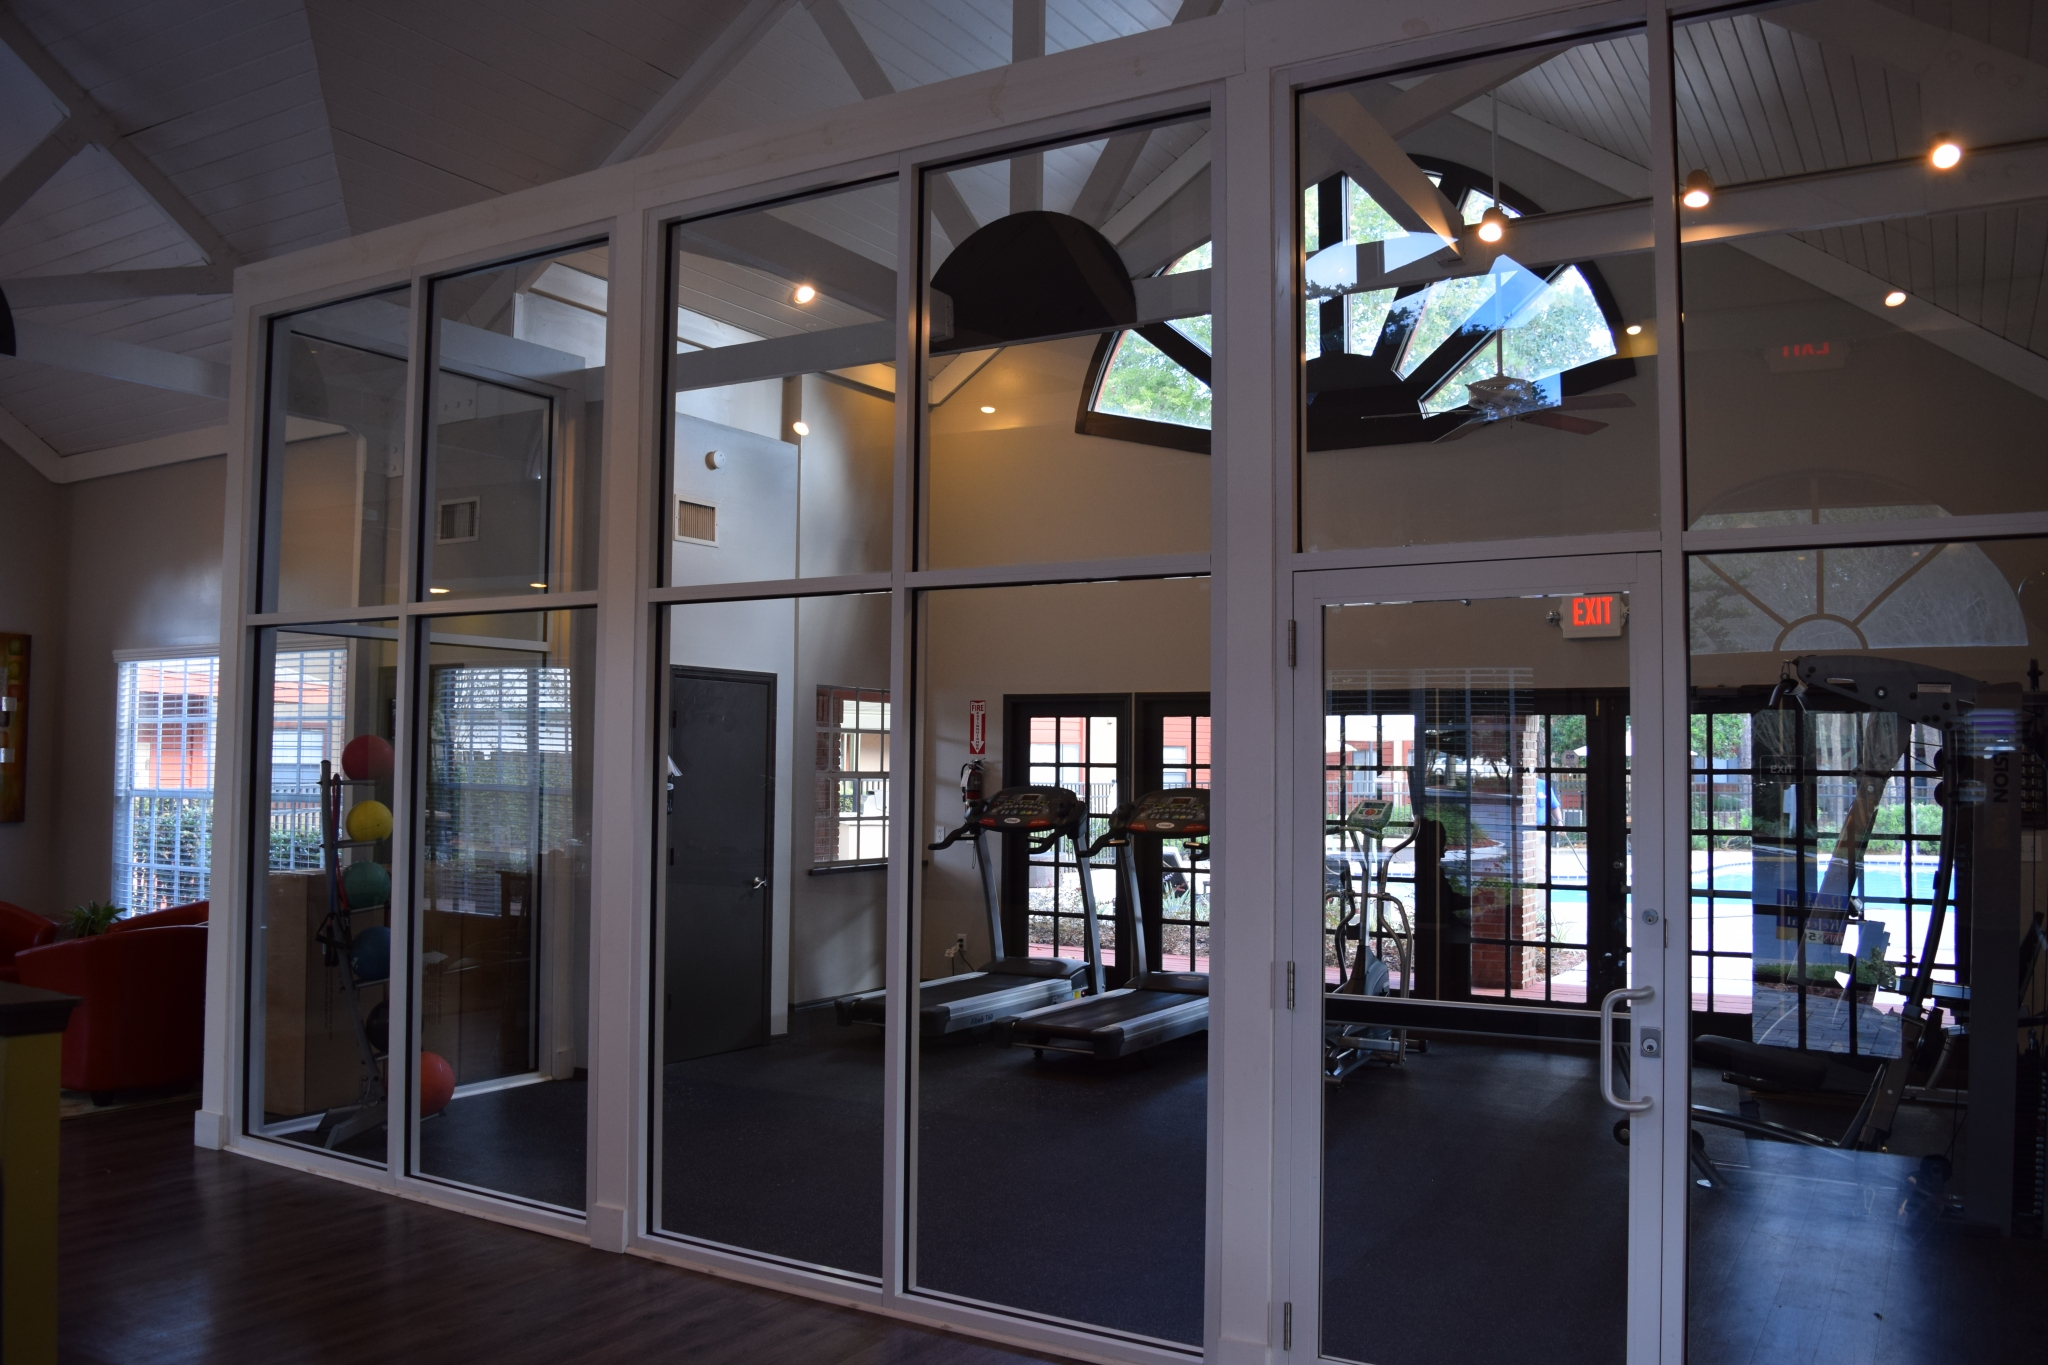 Deerfield Apartments view of community fitness center with treadmills and medicine balls